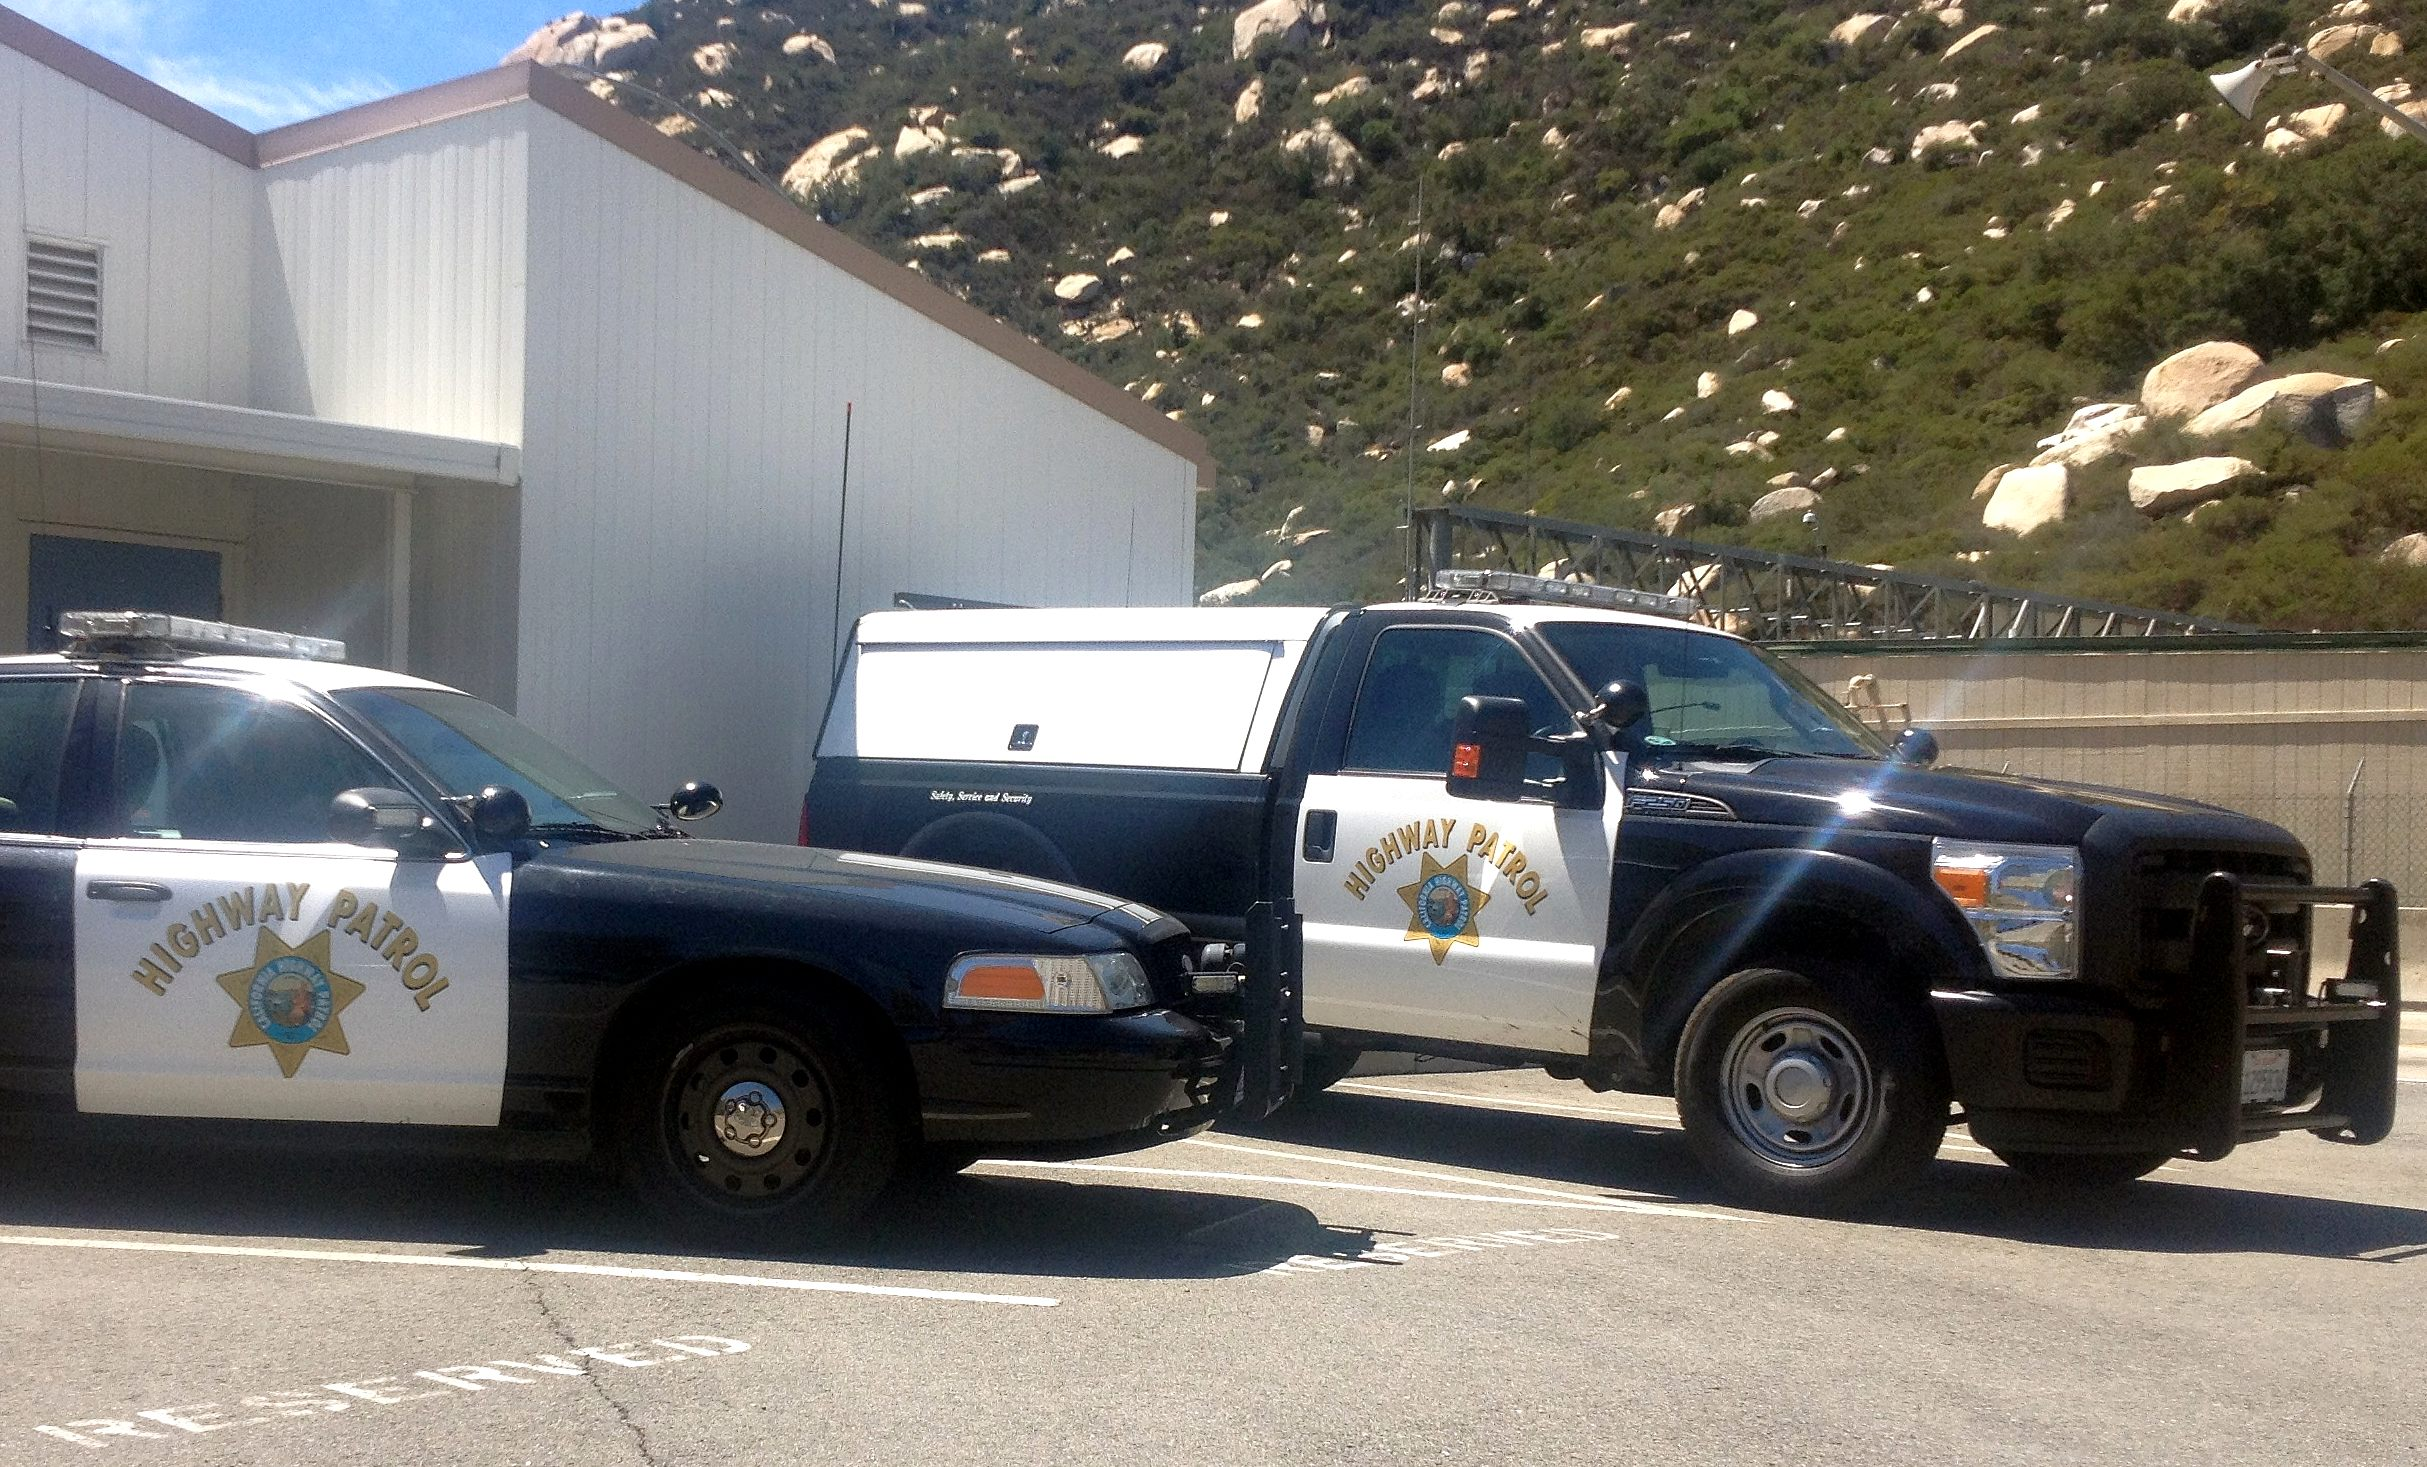 California Highway Patrol Commercial Vehicle Enforcement